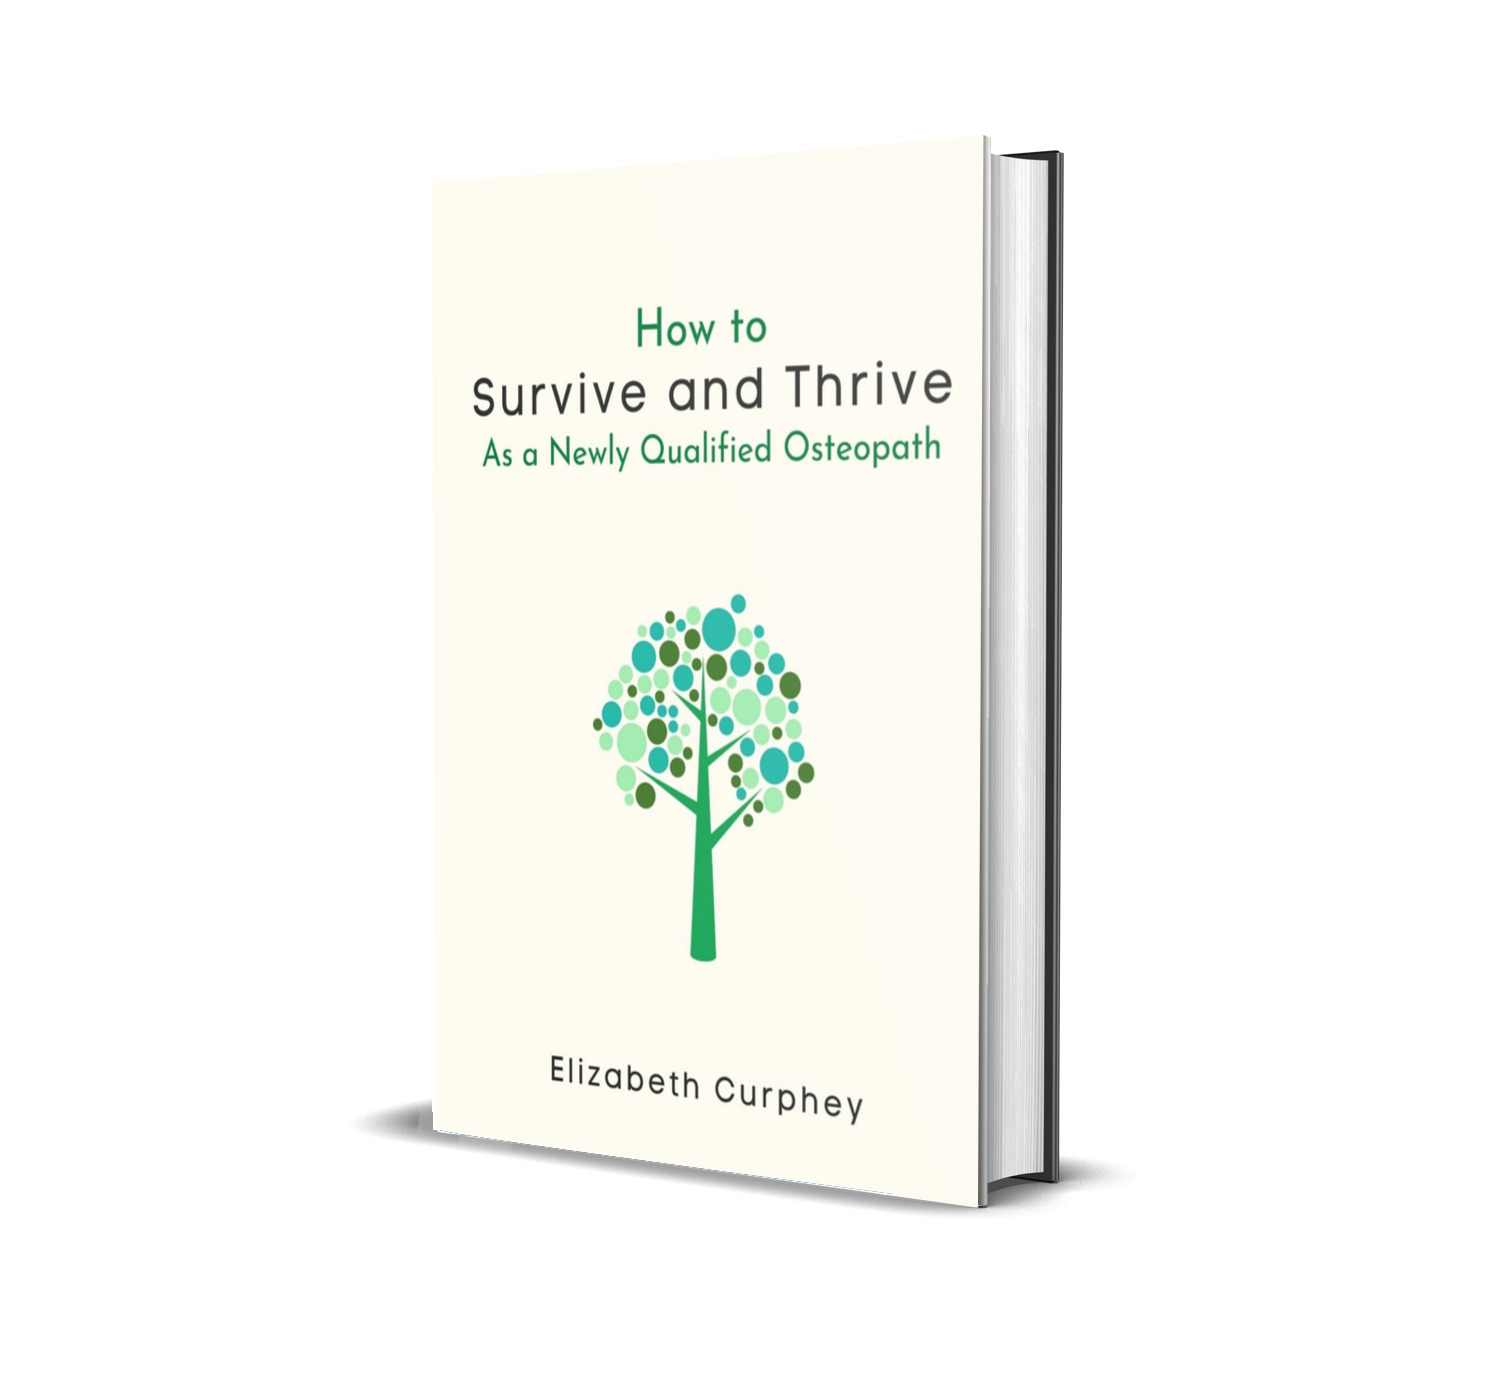 survive-and-thrive-Michelle-Emerson_self-publishing